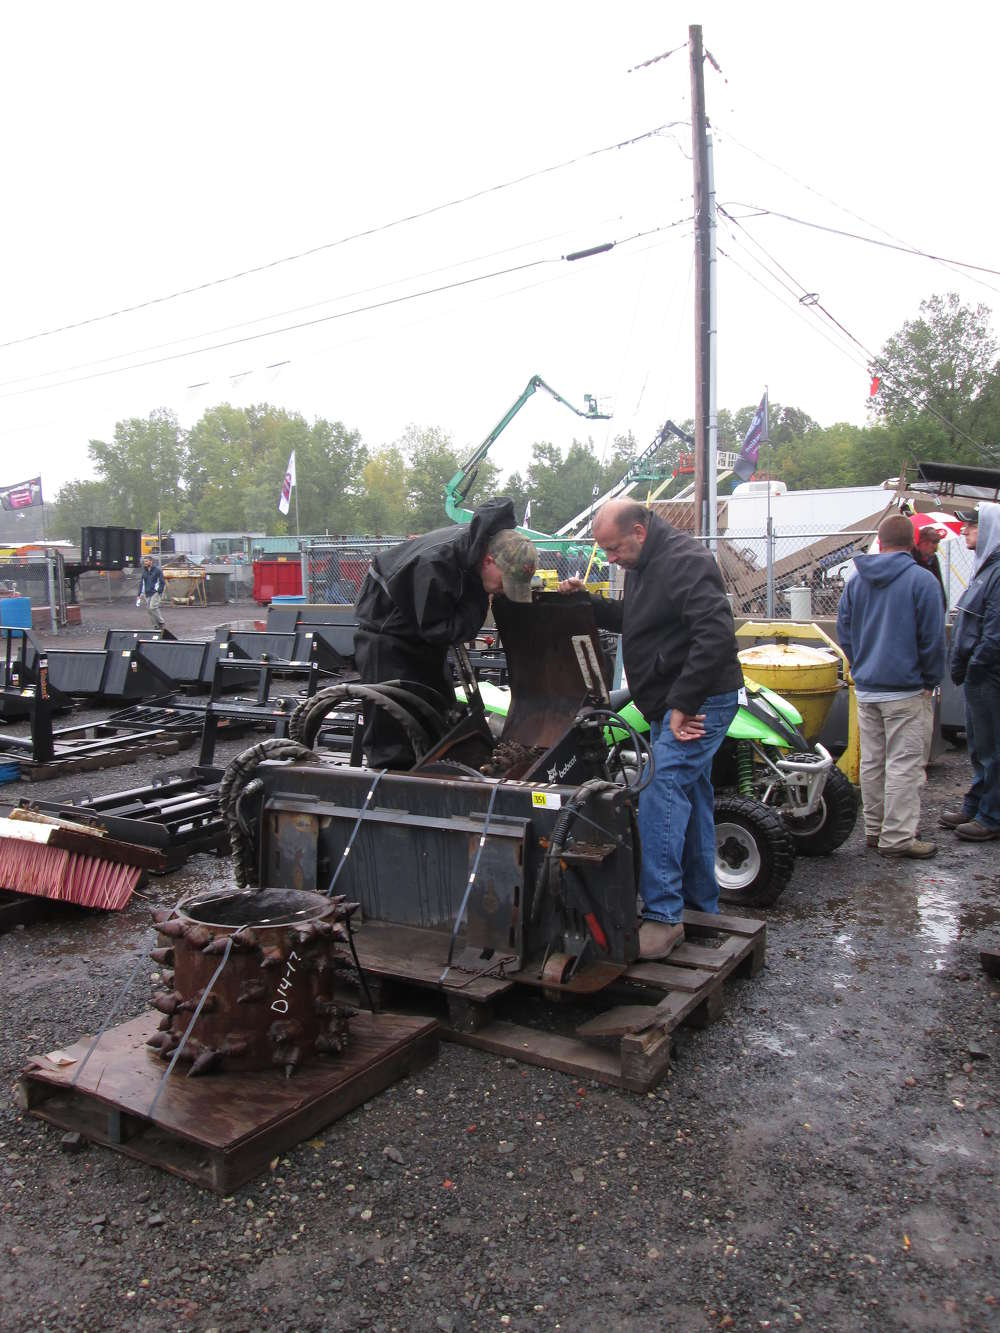 Erik Hansen Jr. (L) and Erik Hansen Sr. of Scavo Construction, Patterson, N.Y., carefully examine a piece of machinery.